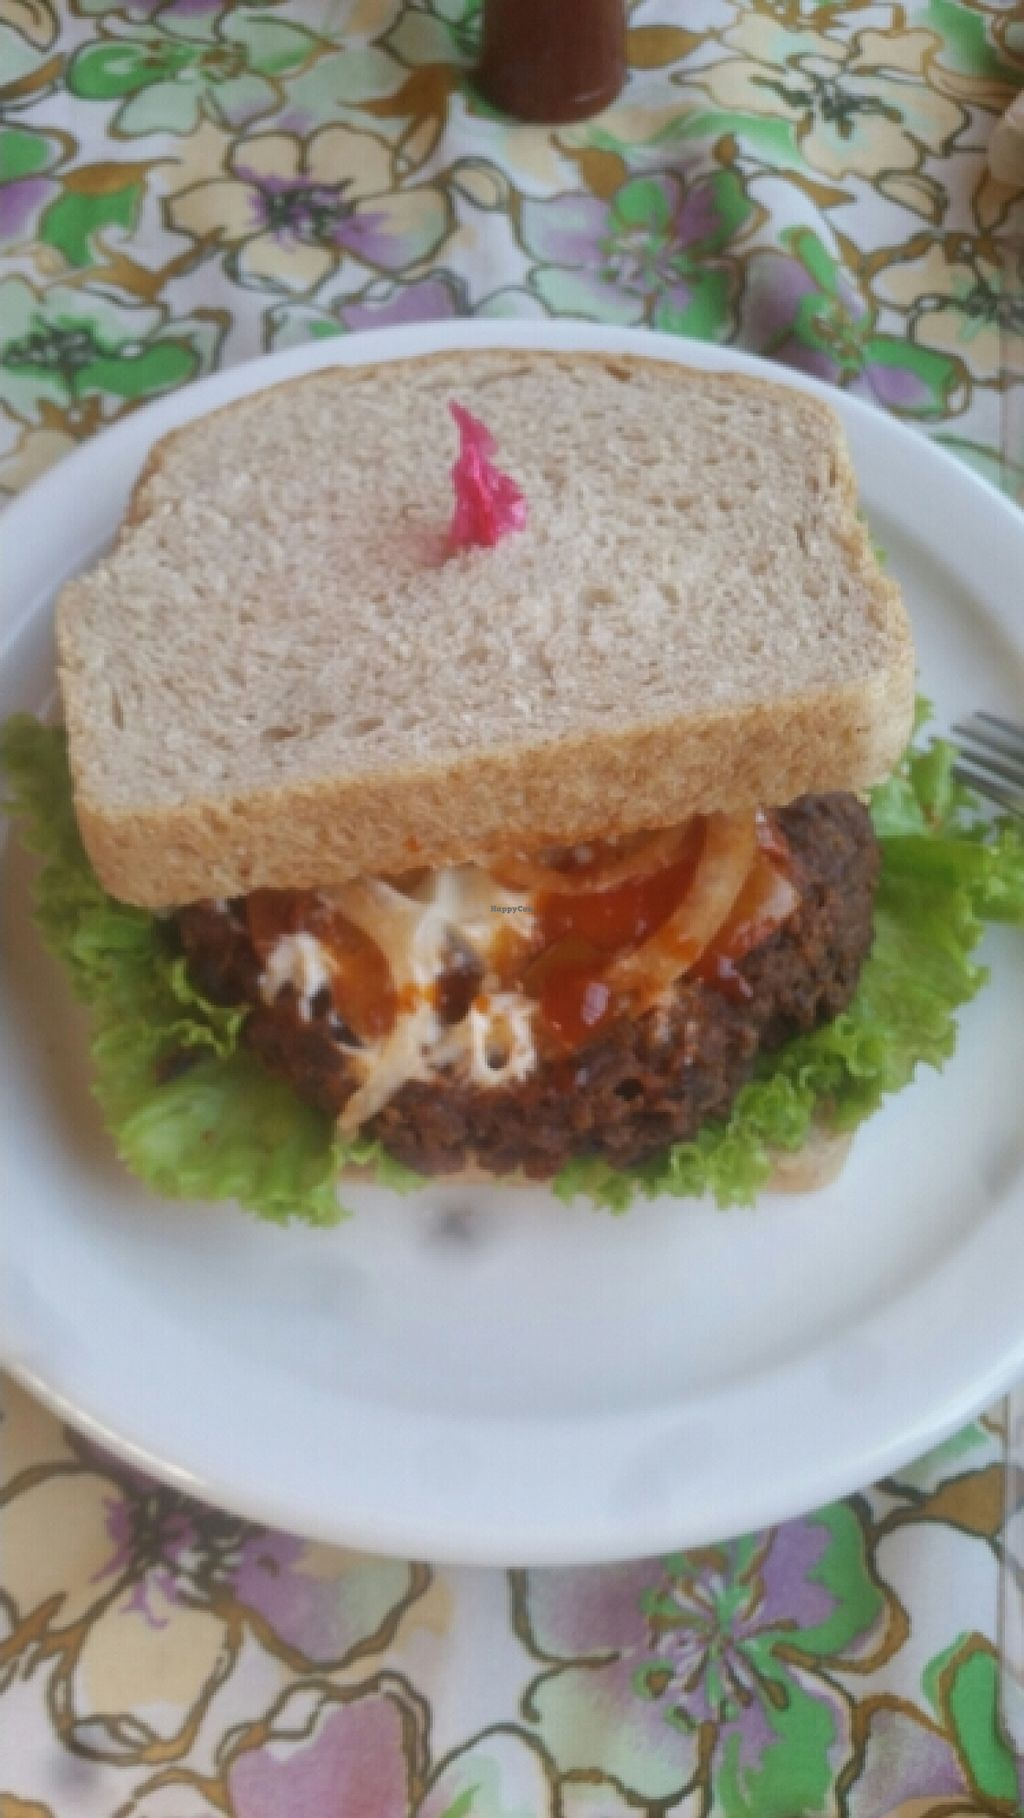 "Photo of Ima's Vegetarian Restaurant  by <a href=""/members/profile/Twism87"">Twism87</a> <br/>Spicy Bean Burger <br/> December 6, 2015  - <a href='/contact/abuse/image/17100/127470'>Report</a>"